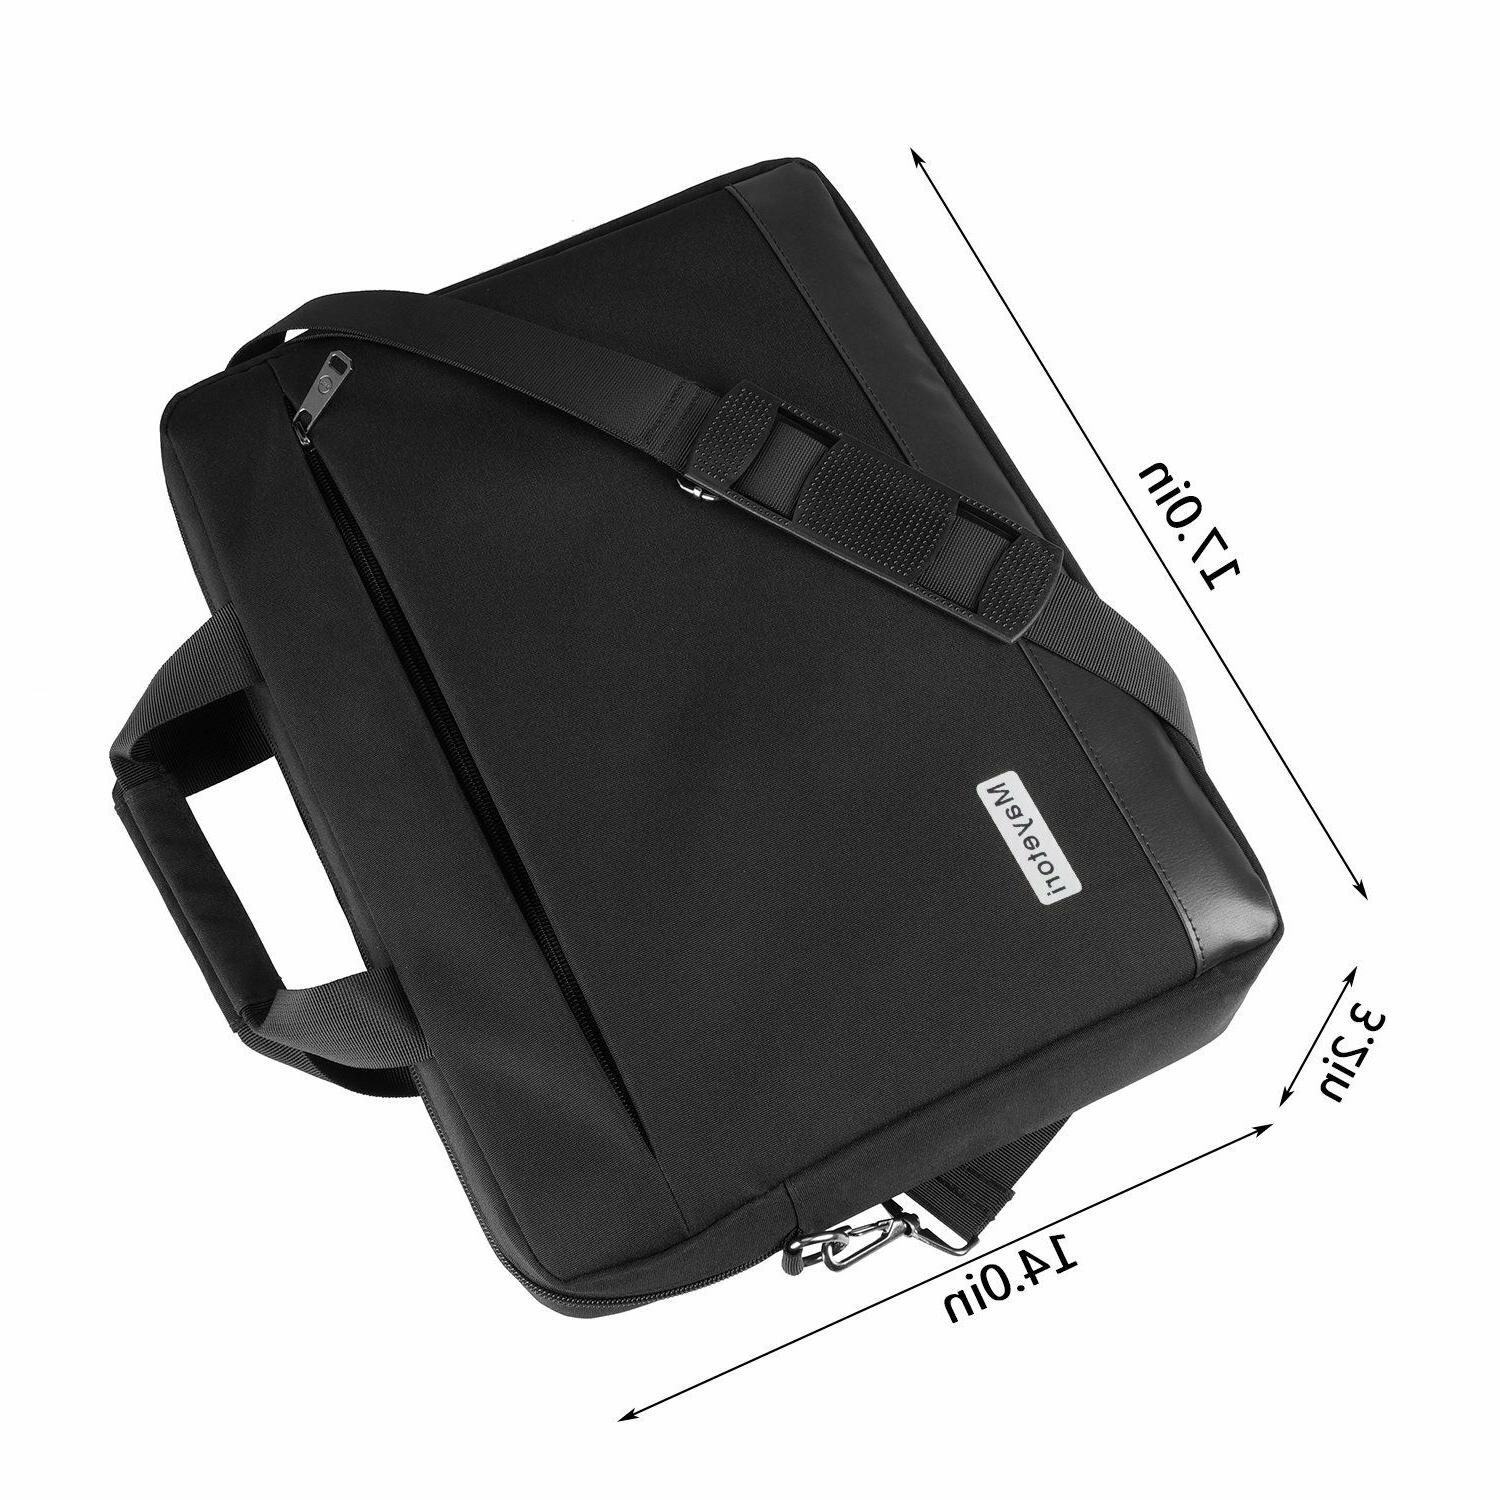 Laptop Computer Bag Office College Carry